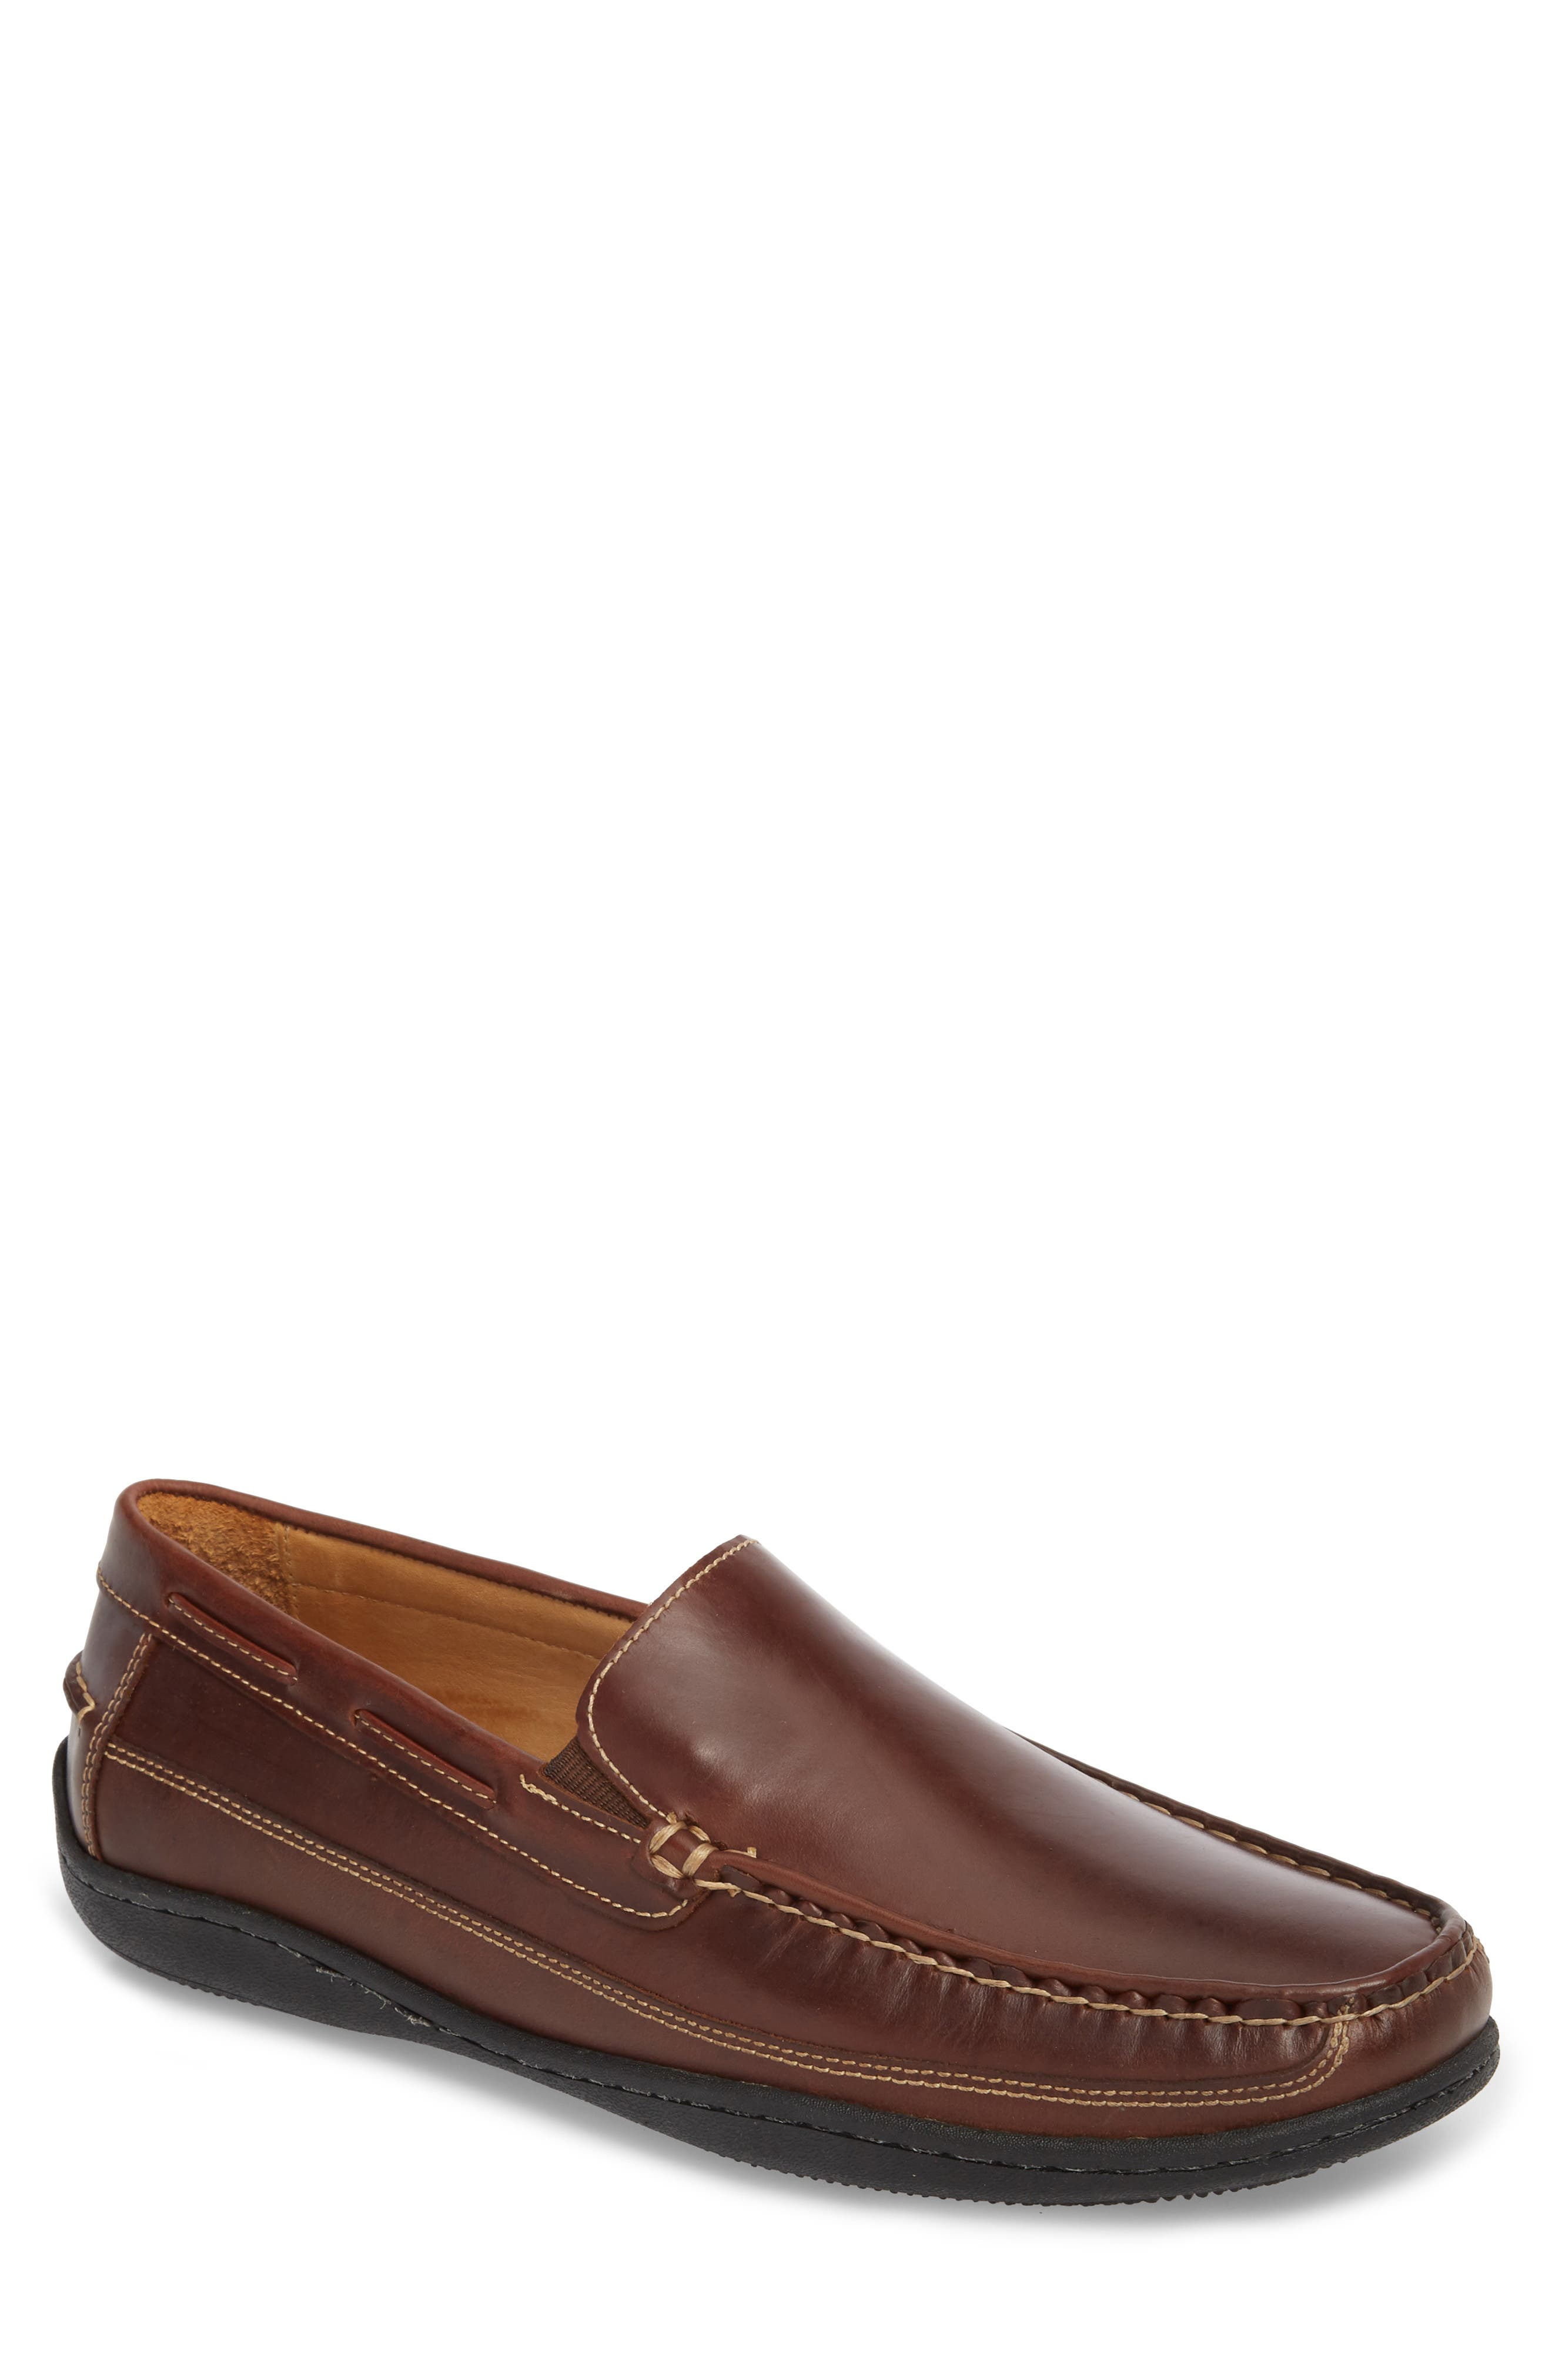 Fowler Moc Toe Loafer,                         Main,                         color, Mahogany Leather